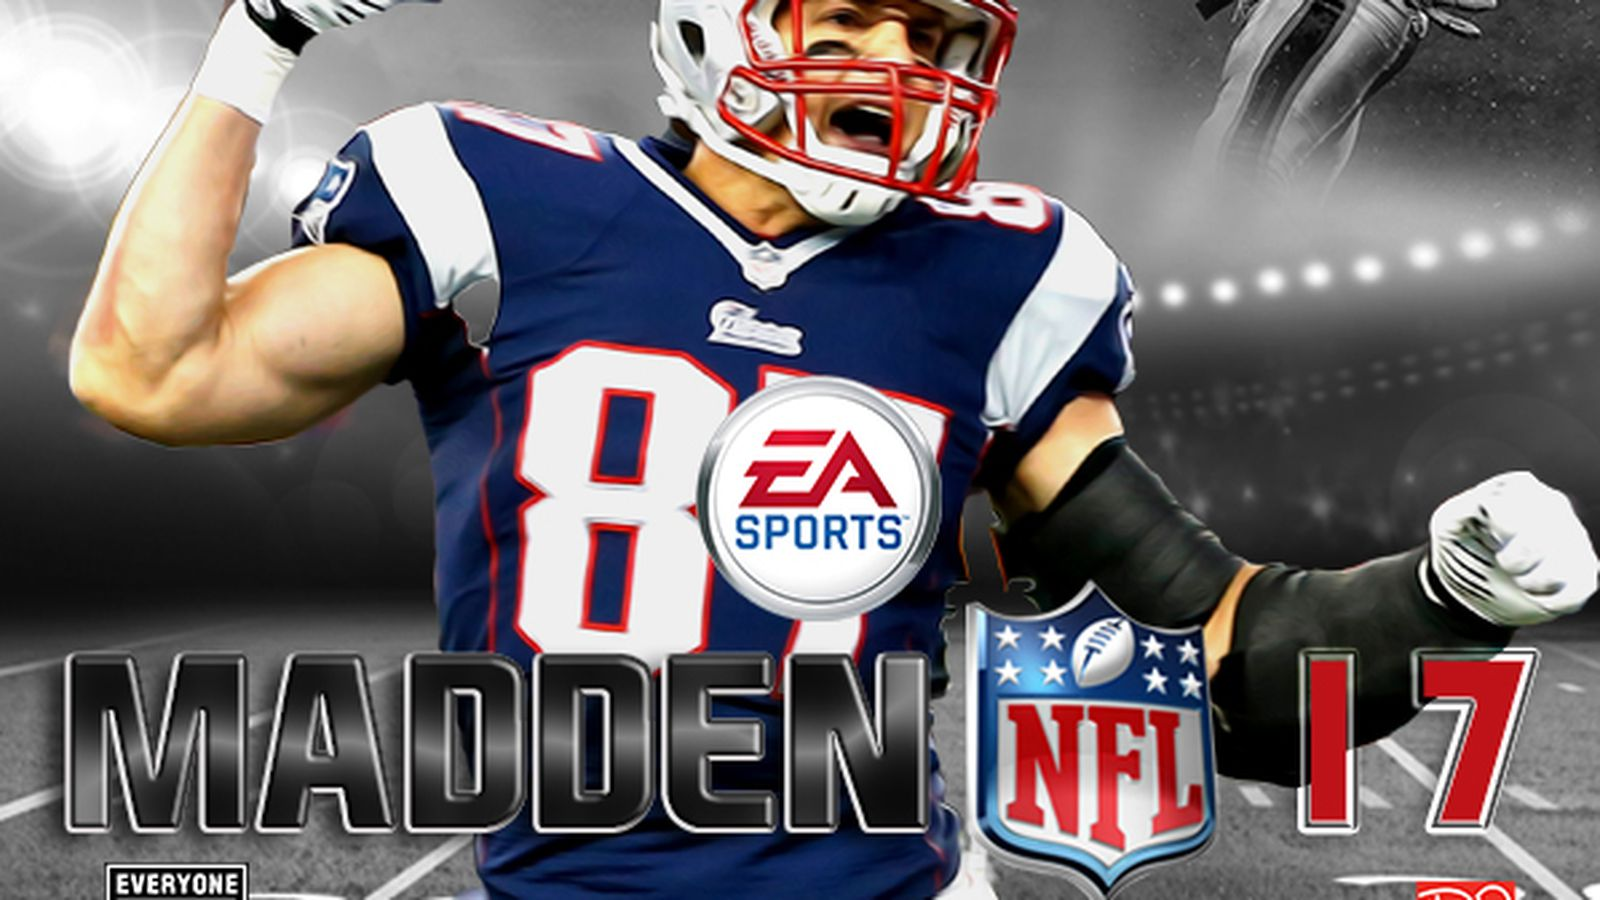 madden nfl 17 rob gronkowski cover image